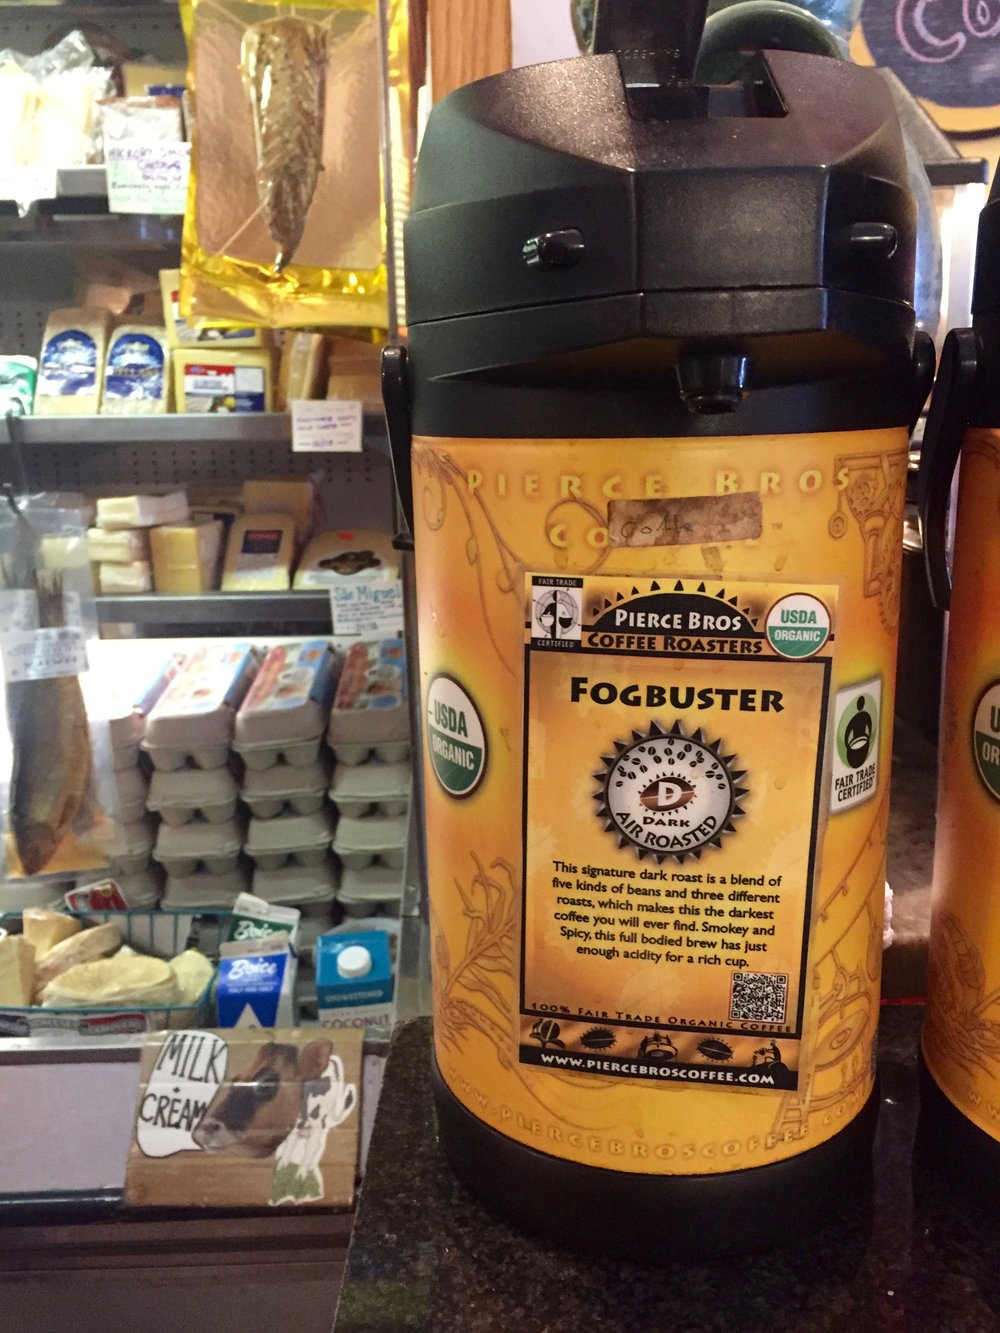 Fogbuster coffee and fine cheeses at The Big Cheese, Rosendale, NY